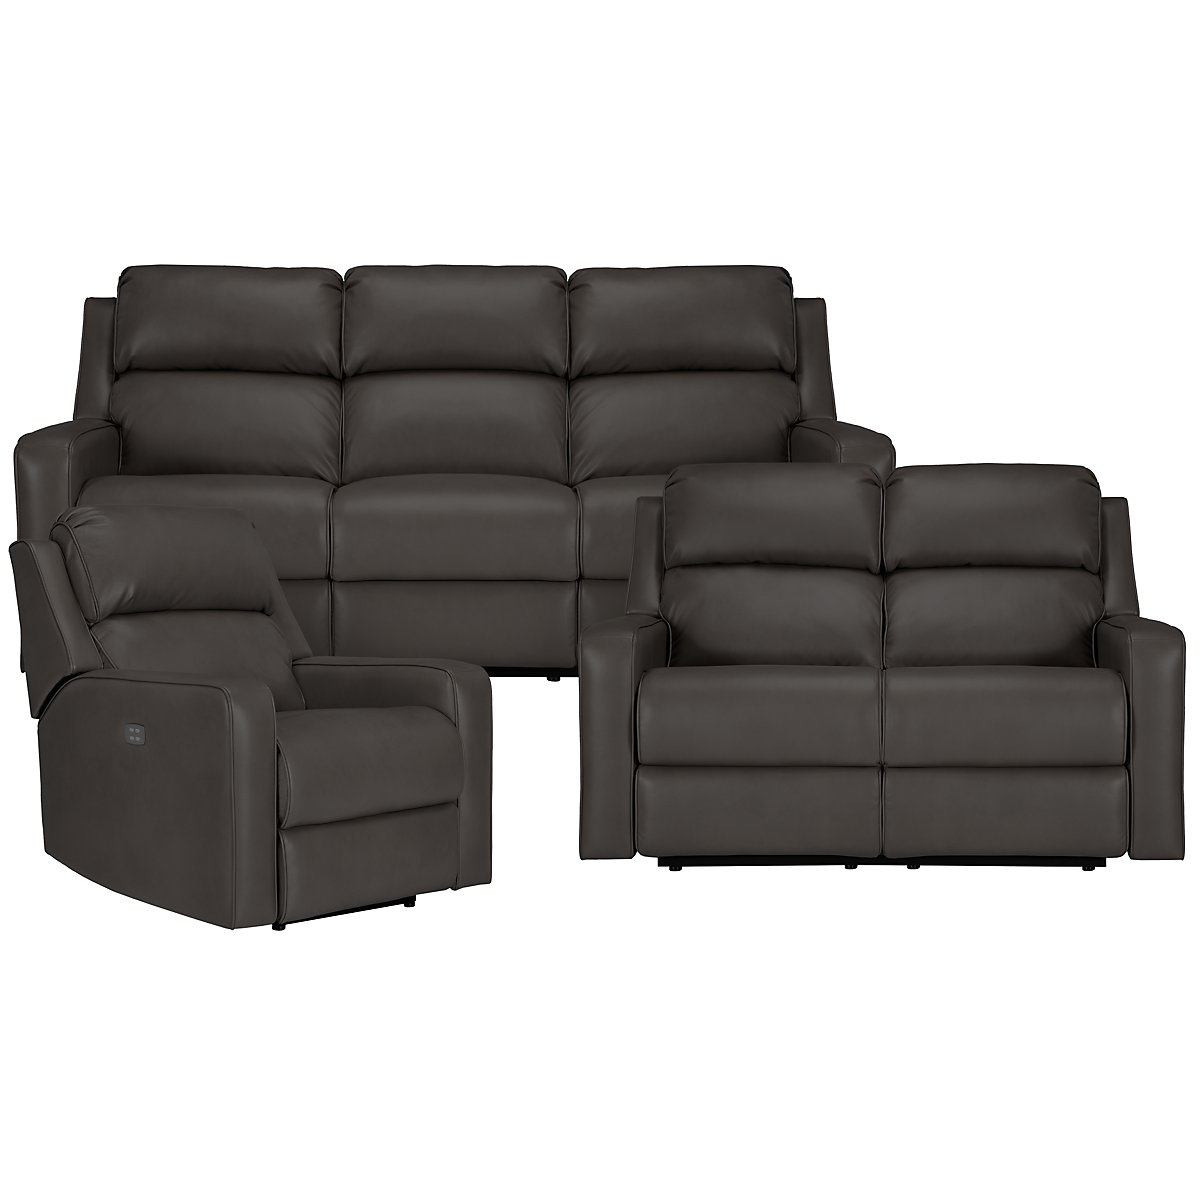 Rocco Gray Microfiber Power Reclining Living Room